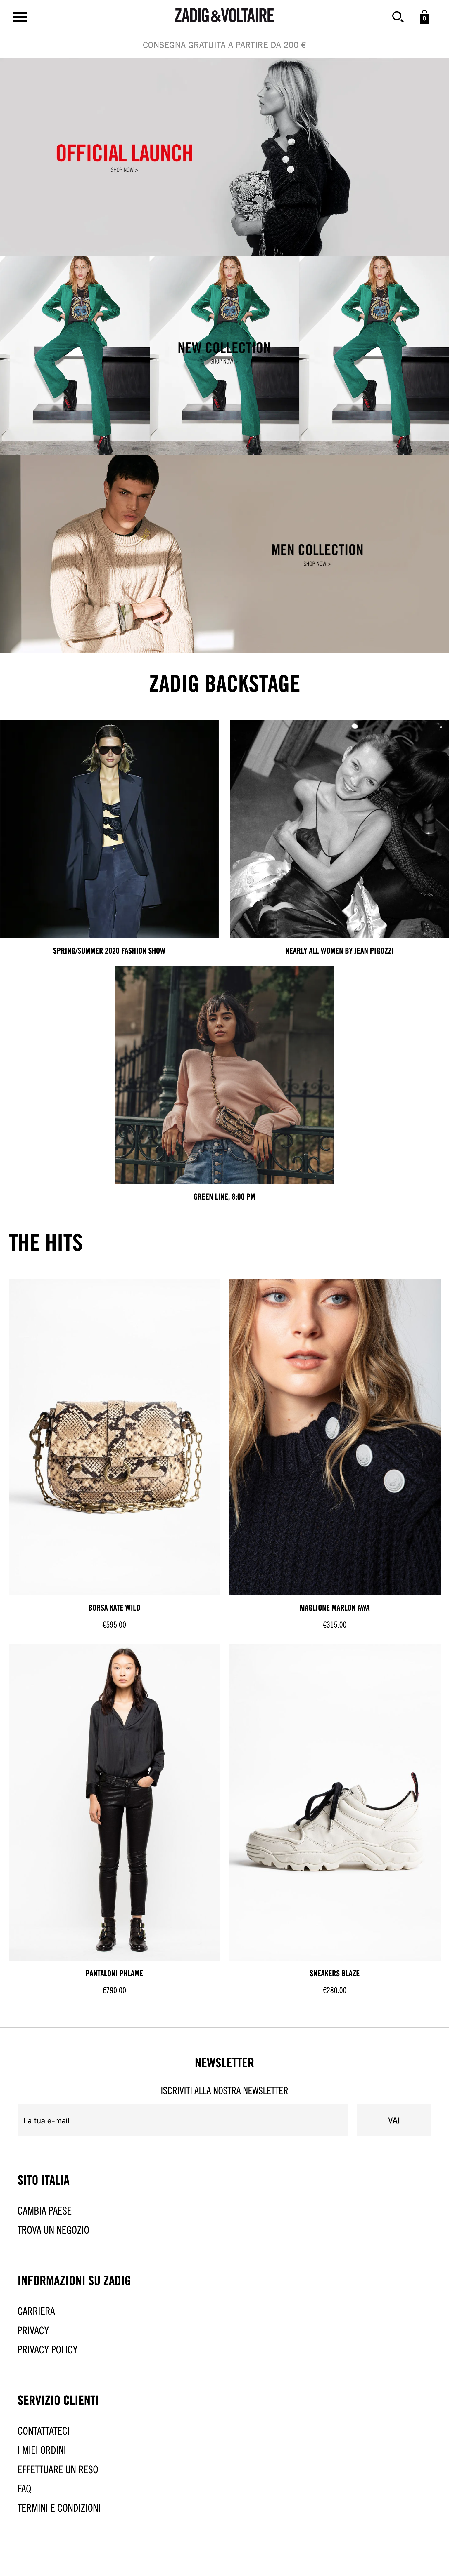 Agence-DND-Creation-Site-ECommerce-Zadig&Voltaire